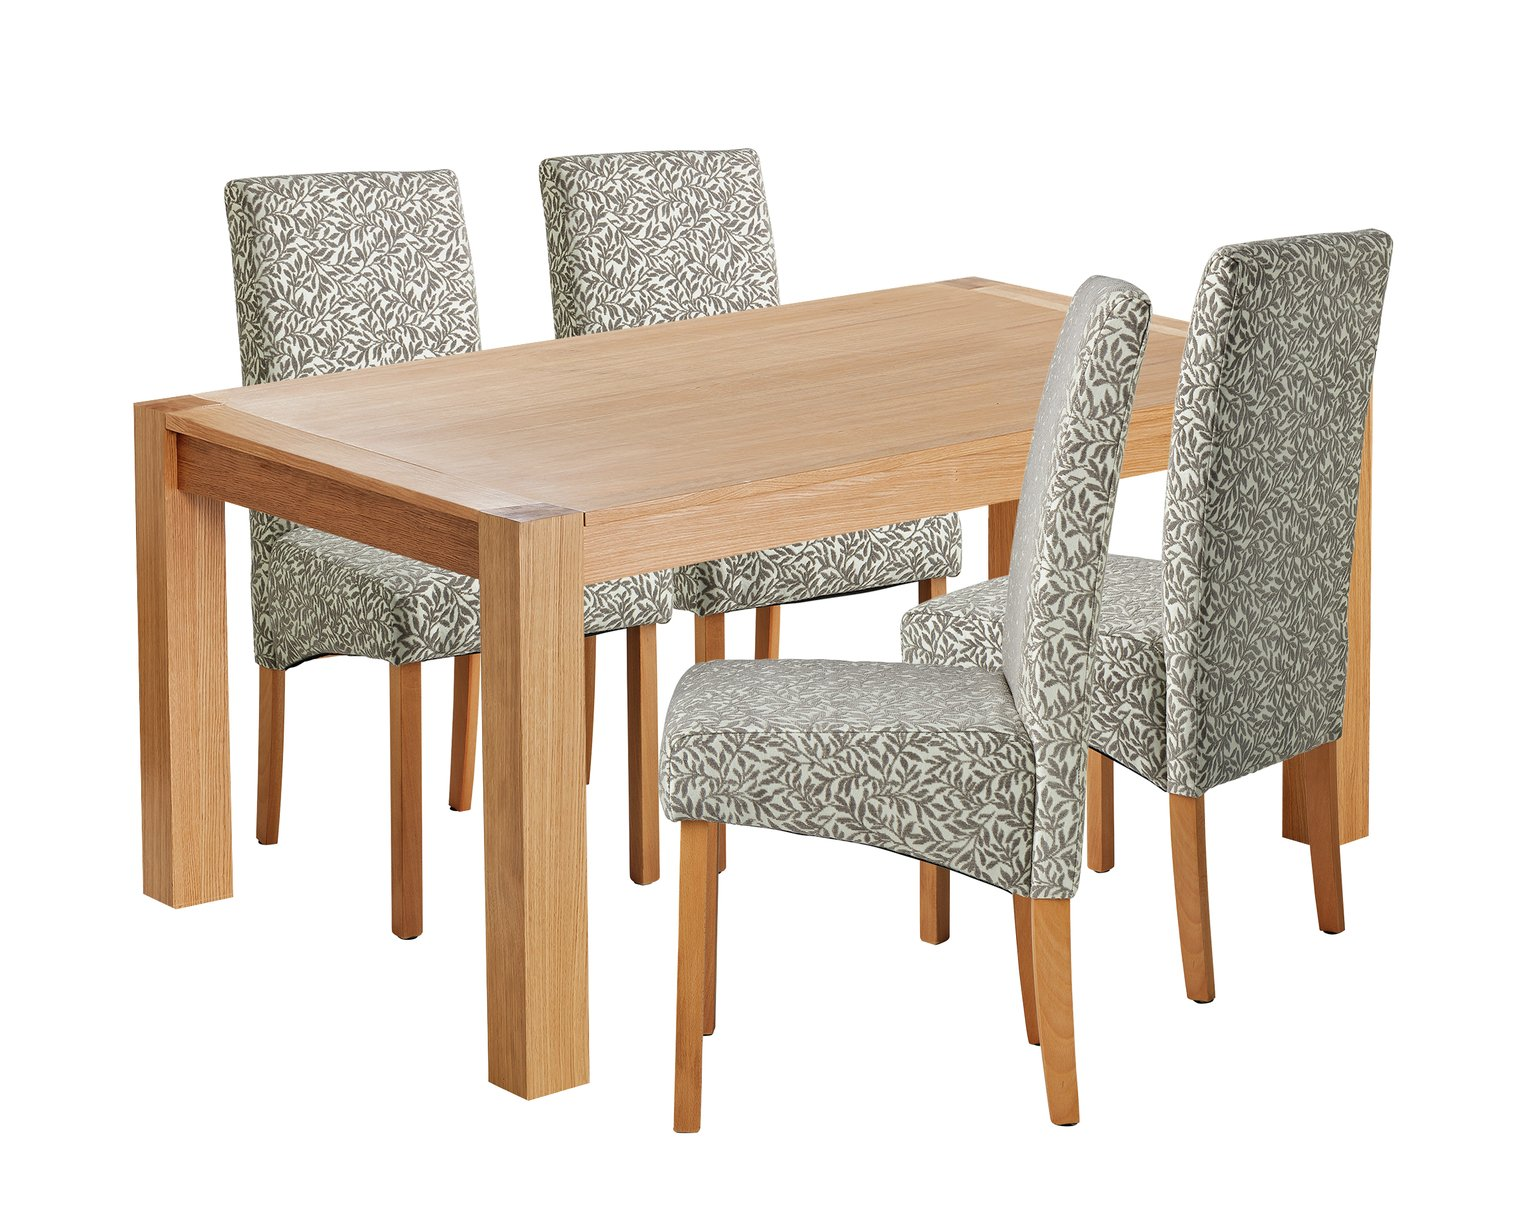 Argos Home Alston Oak Veneer Table & 4 Chairs - Floral